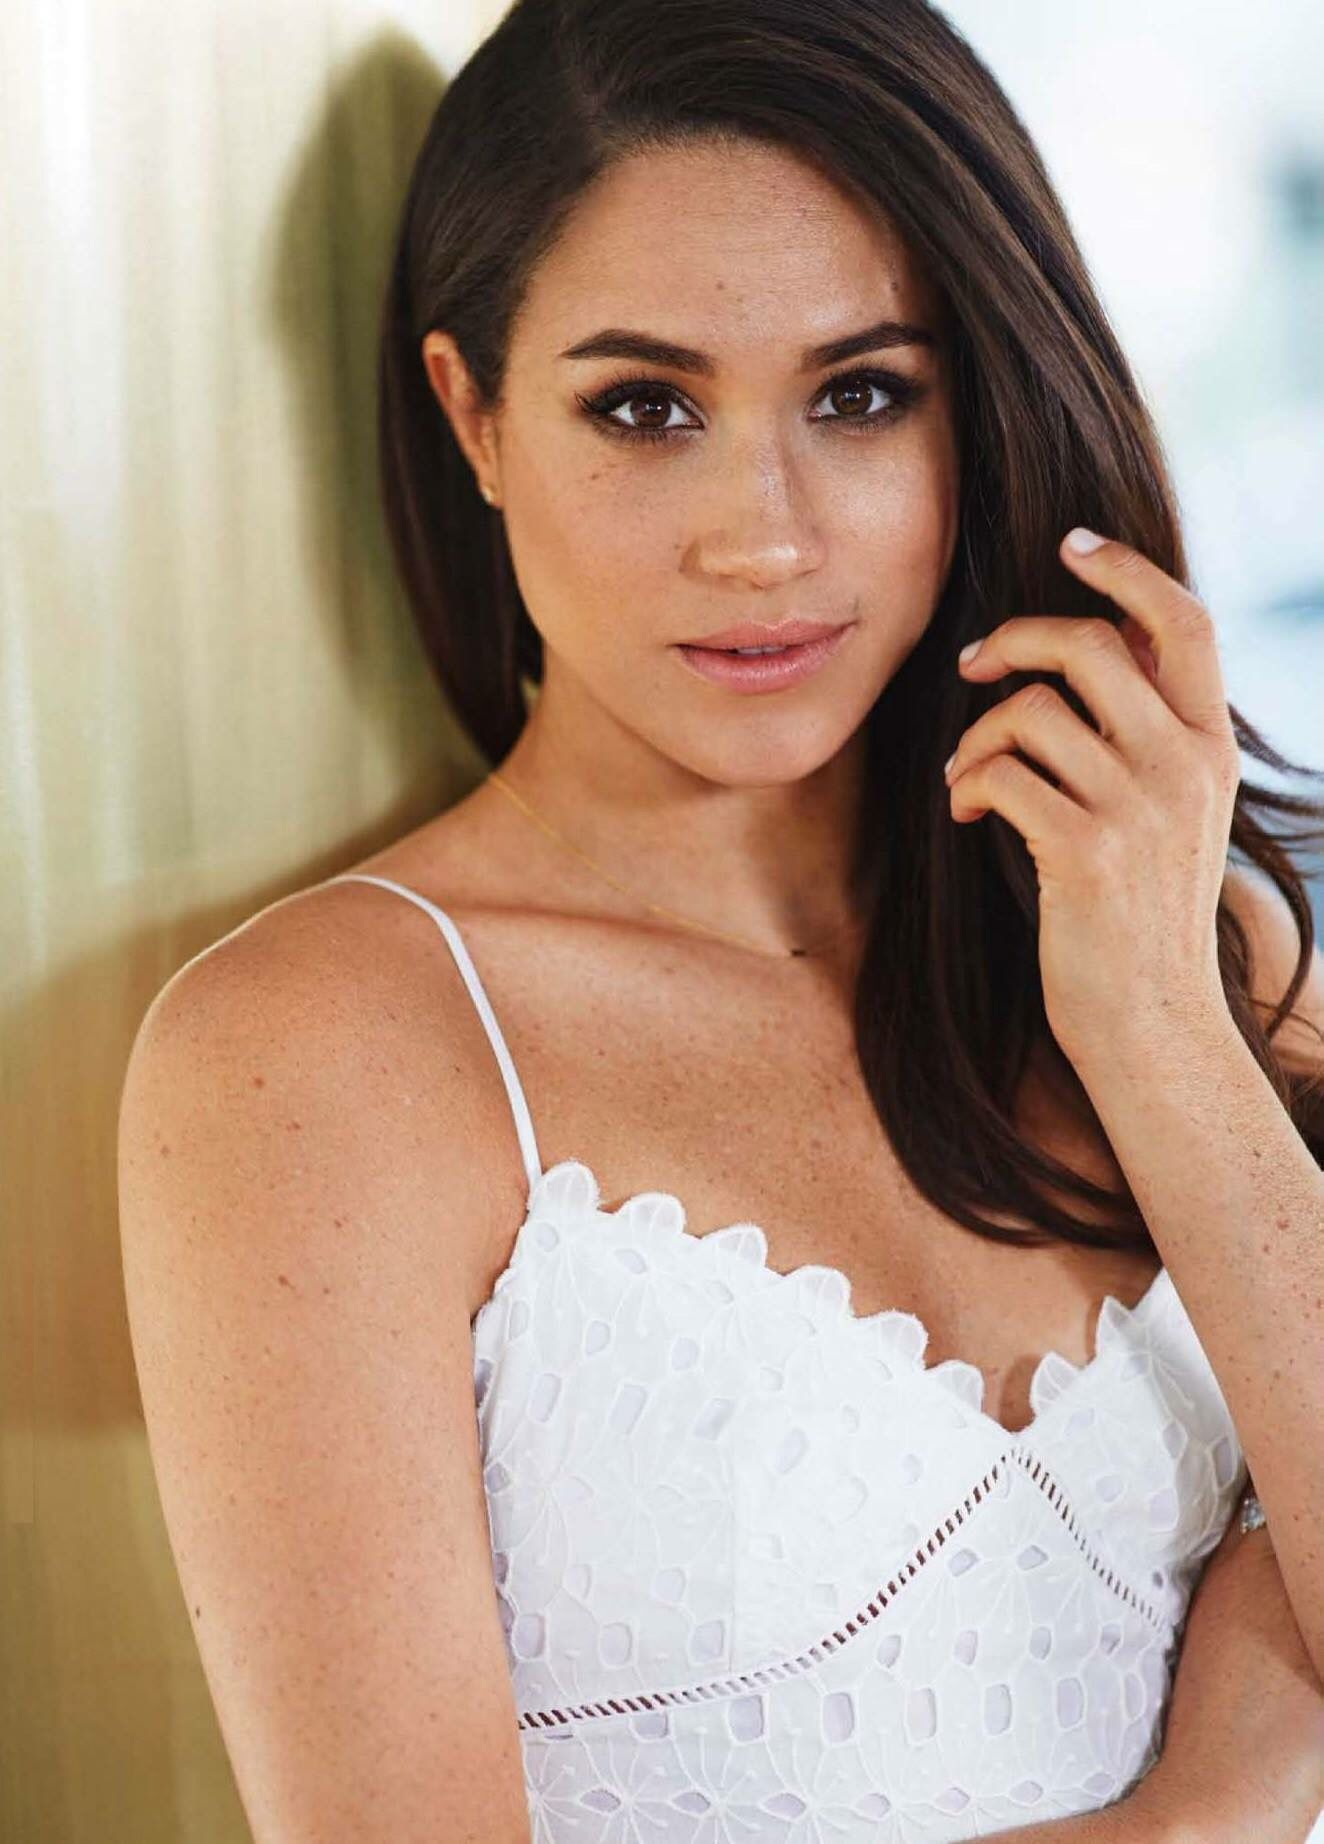 Fappening Meghan Markle naked (34 photos), Sexy, Leaked, Boobs, in bikini 2015